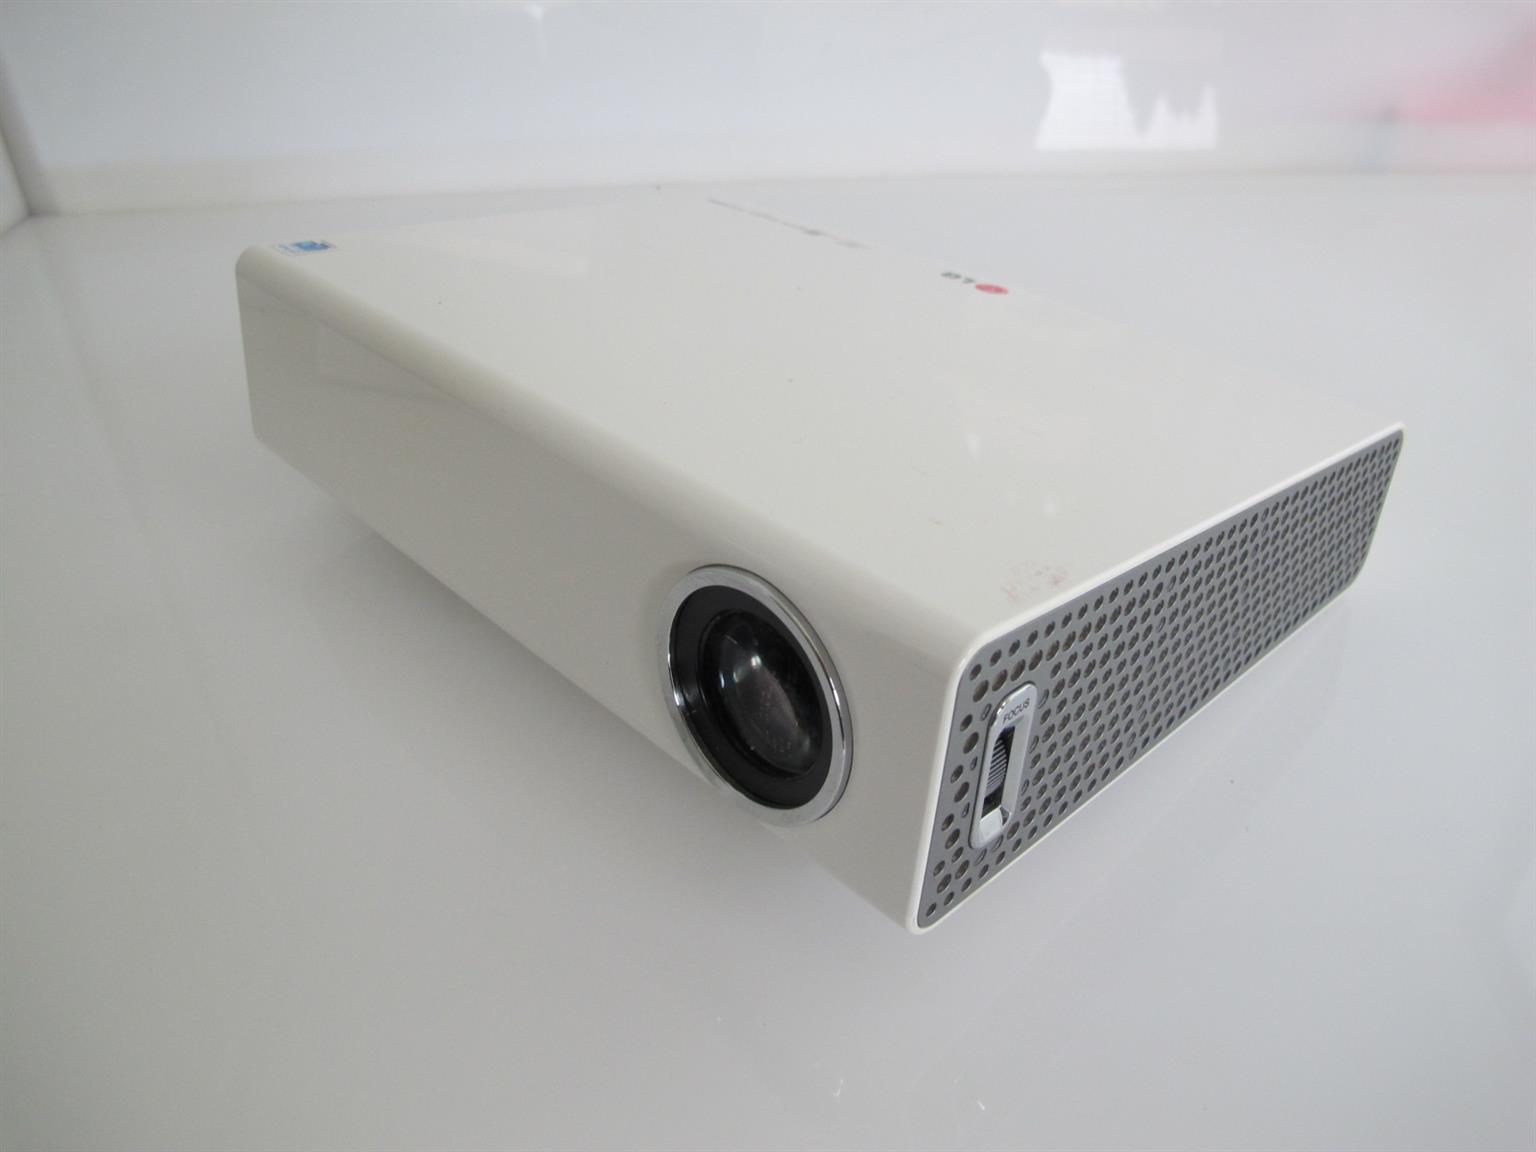 LG PA72G 700 Lumens Portable LED Projector HARDLY USED no remote